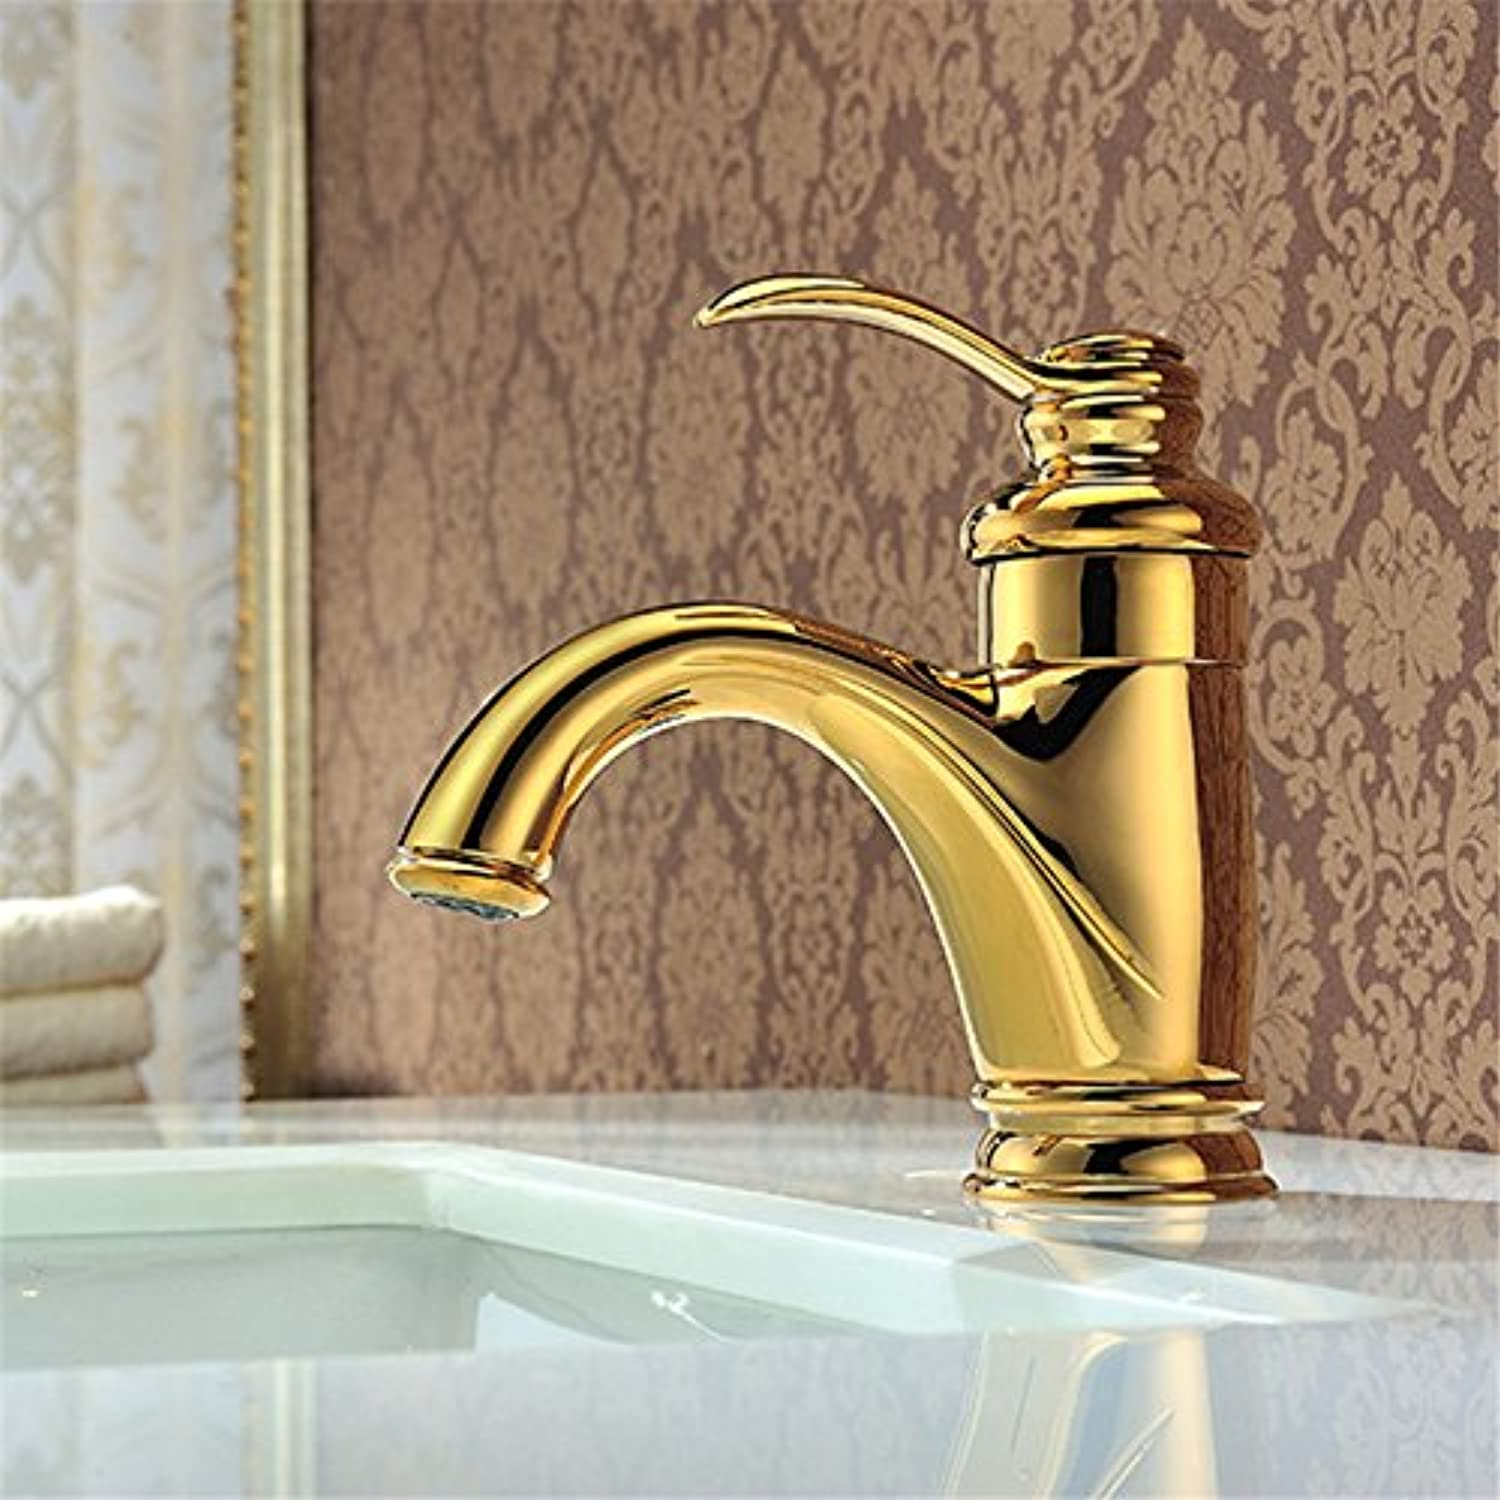 Electroplating Retro Faucet golden bathroom faucet hot and cold clouds kitchen kitchen upscale European-style golden faucet kitchen faucet,Chrome